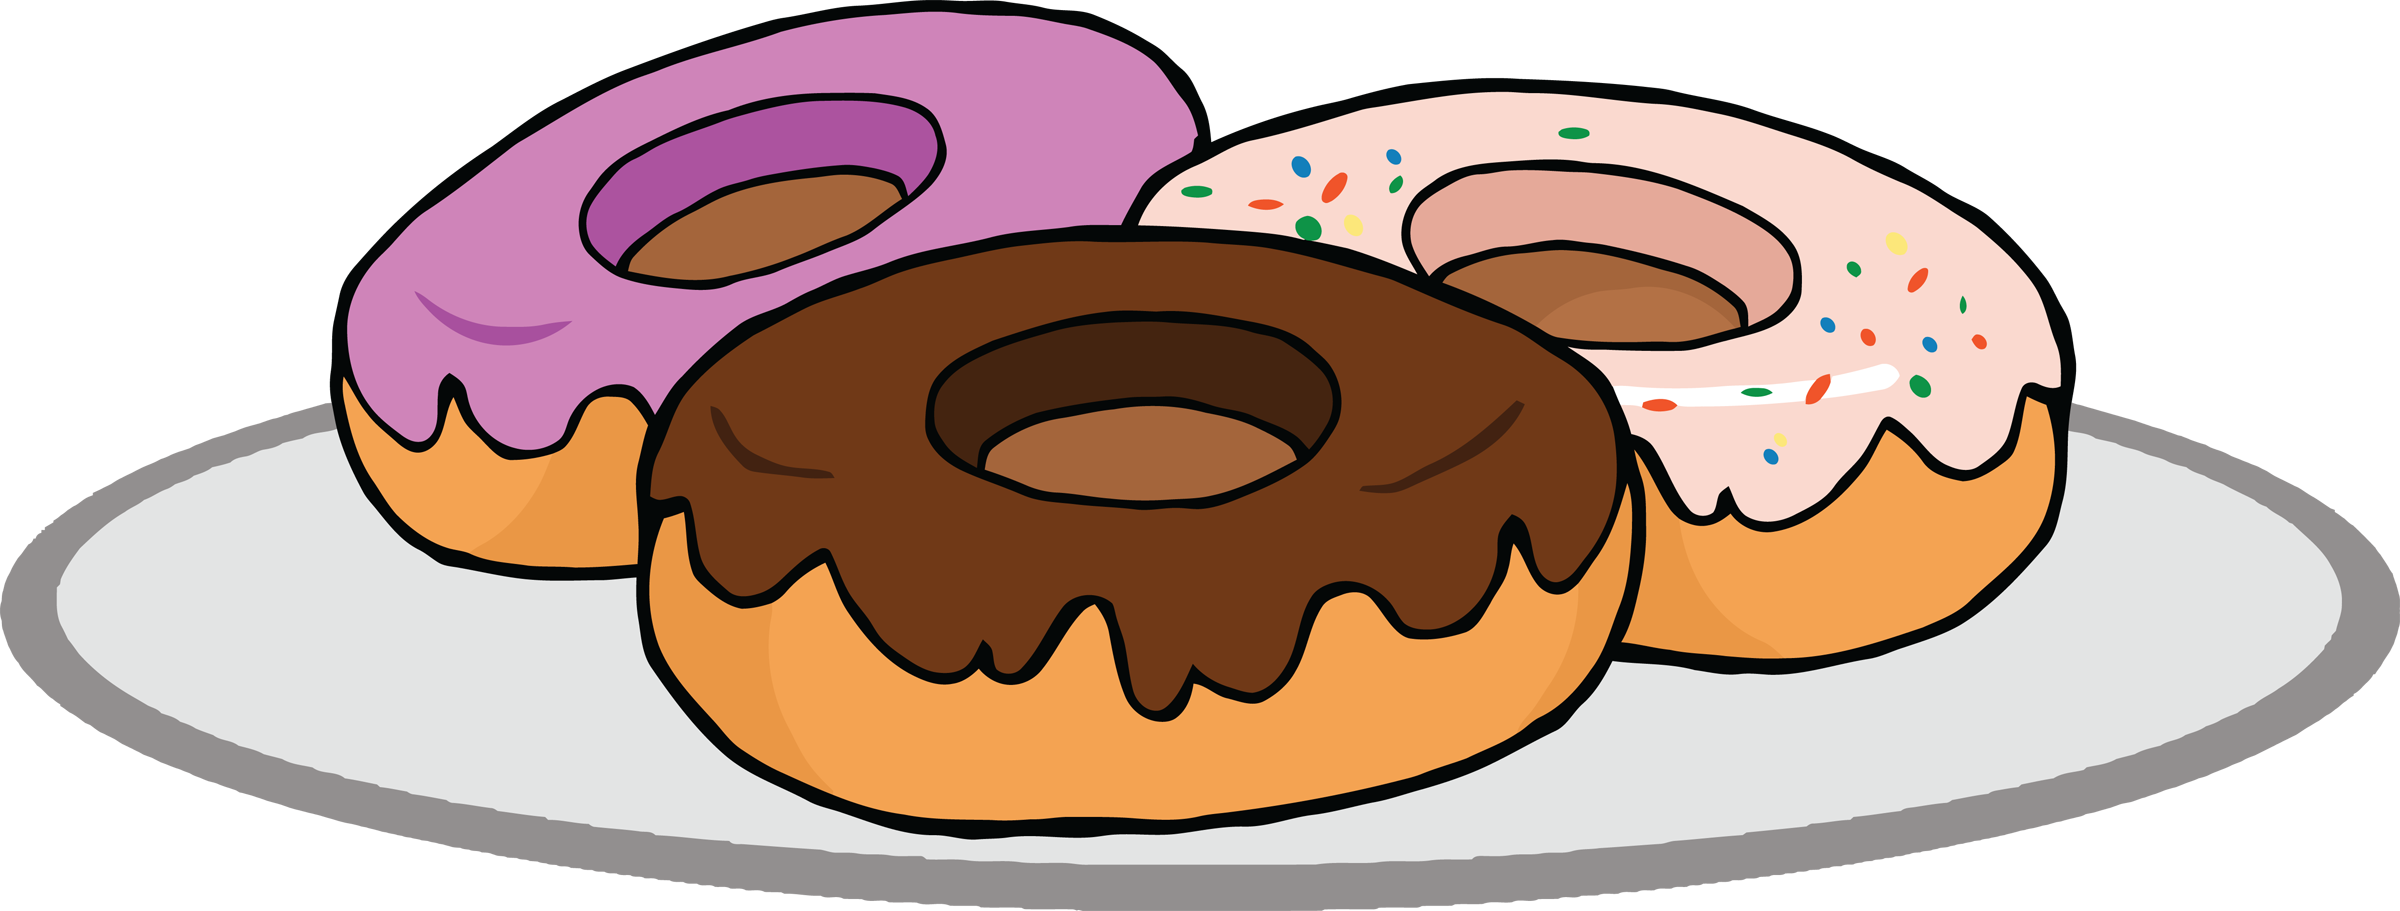 3 clipart donut. Clip art recipes pinterest